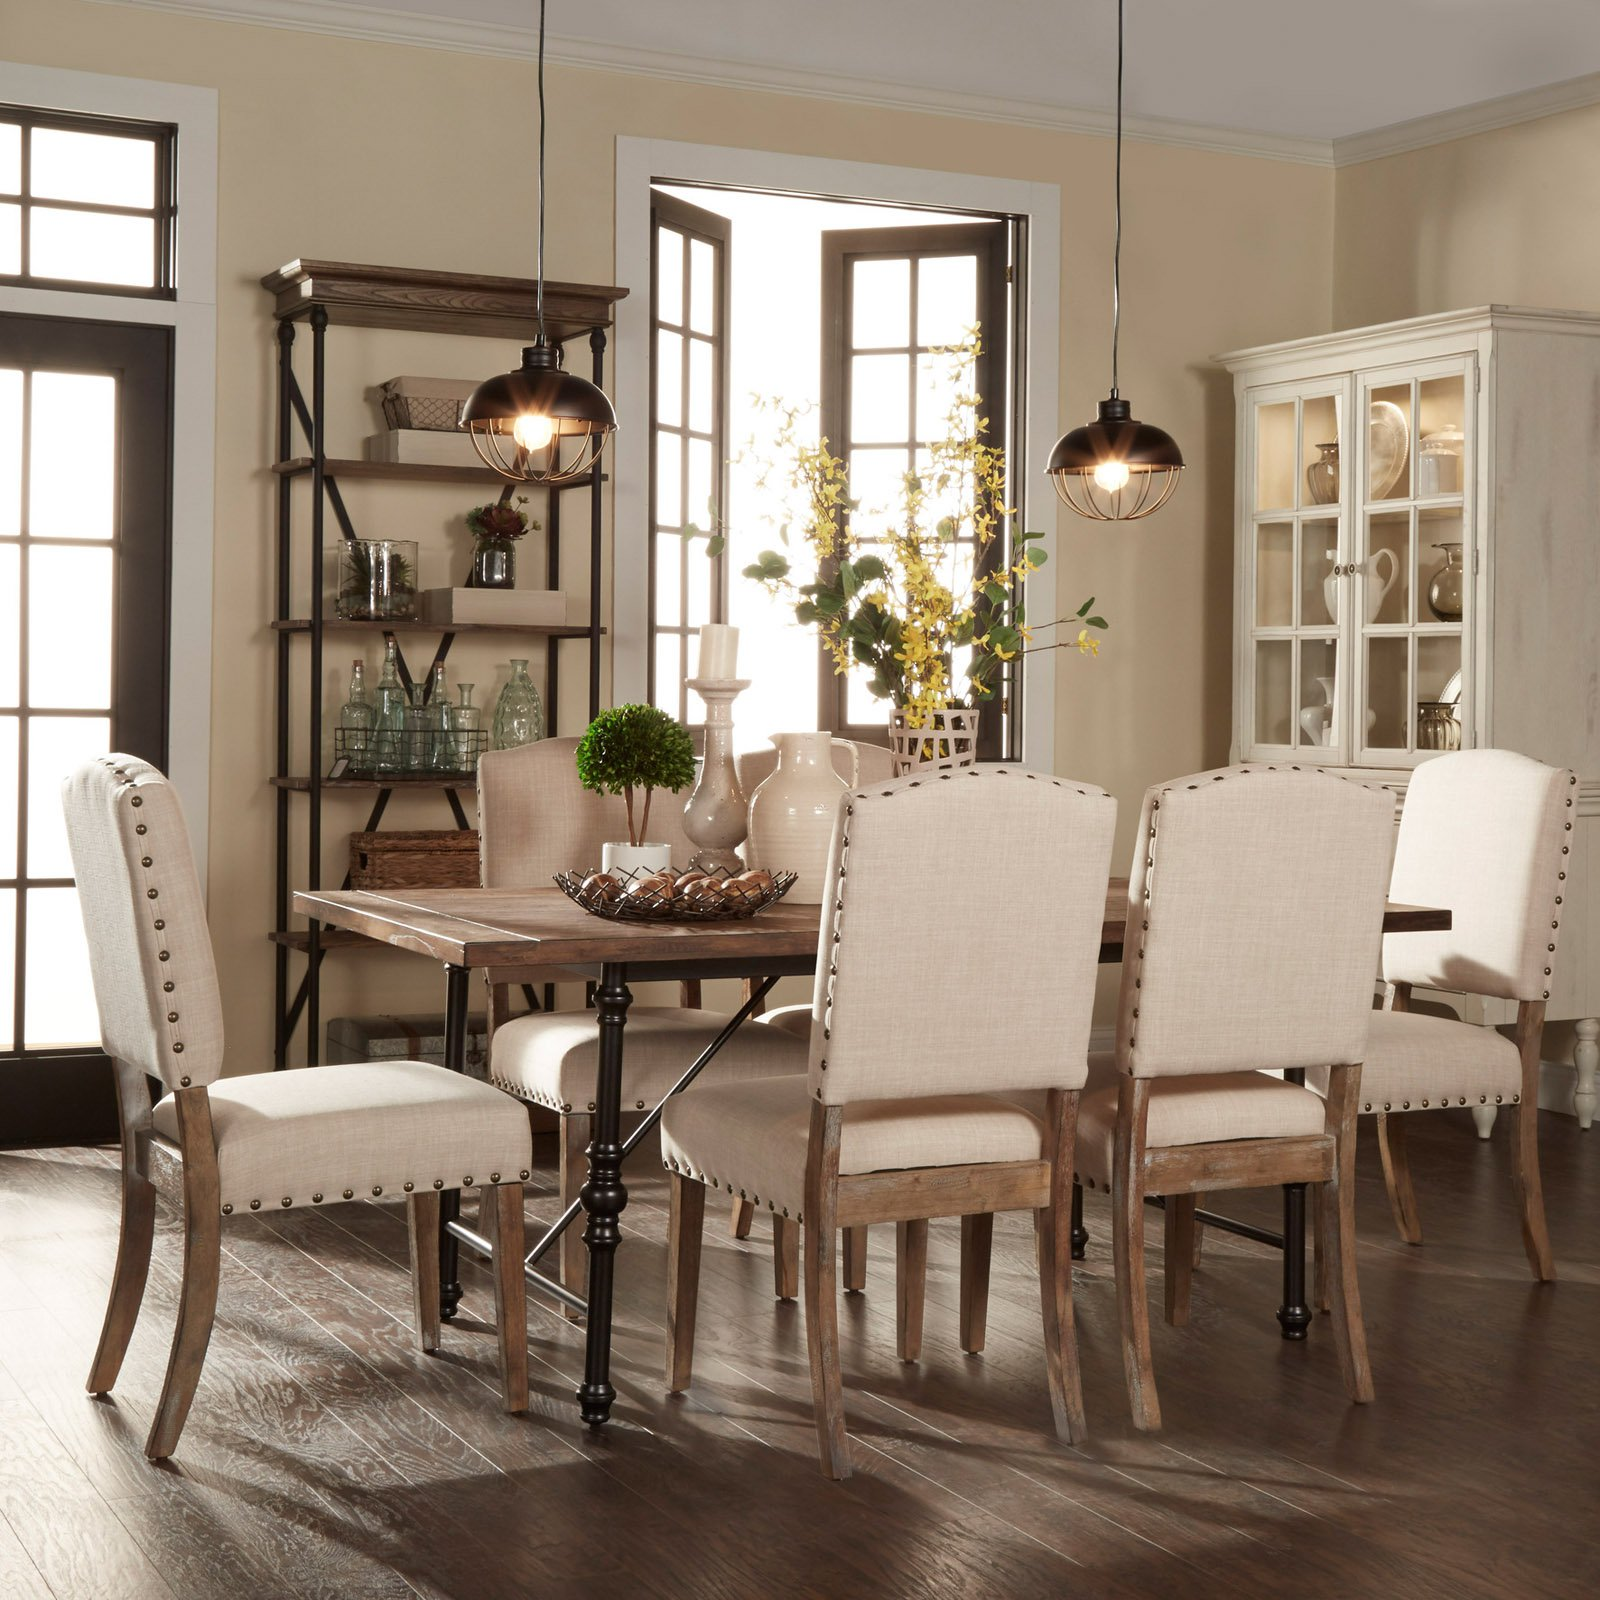 Weston Home 7 Piece Industrial Dining Set With Beige Chairs